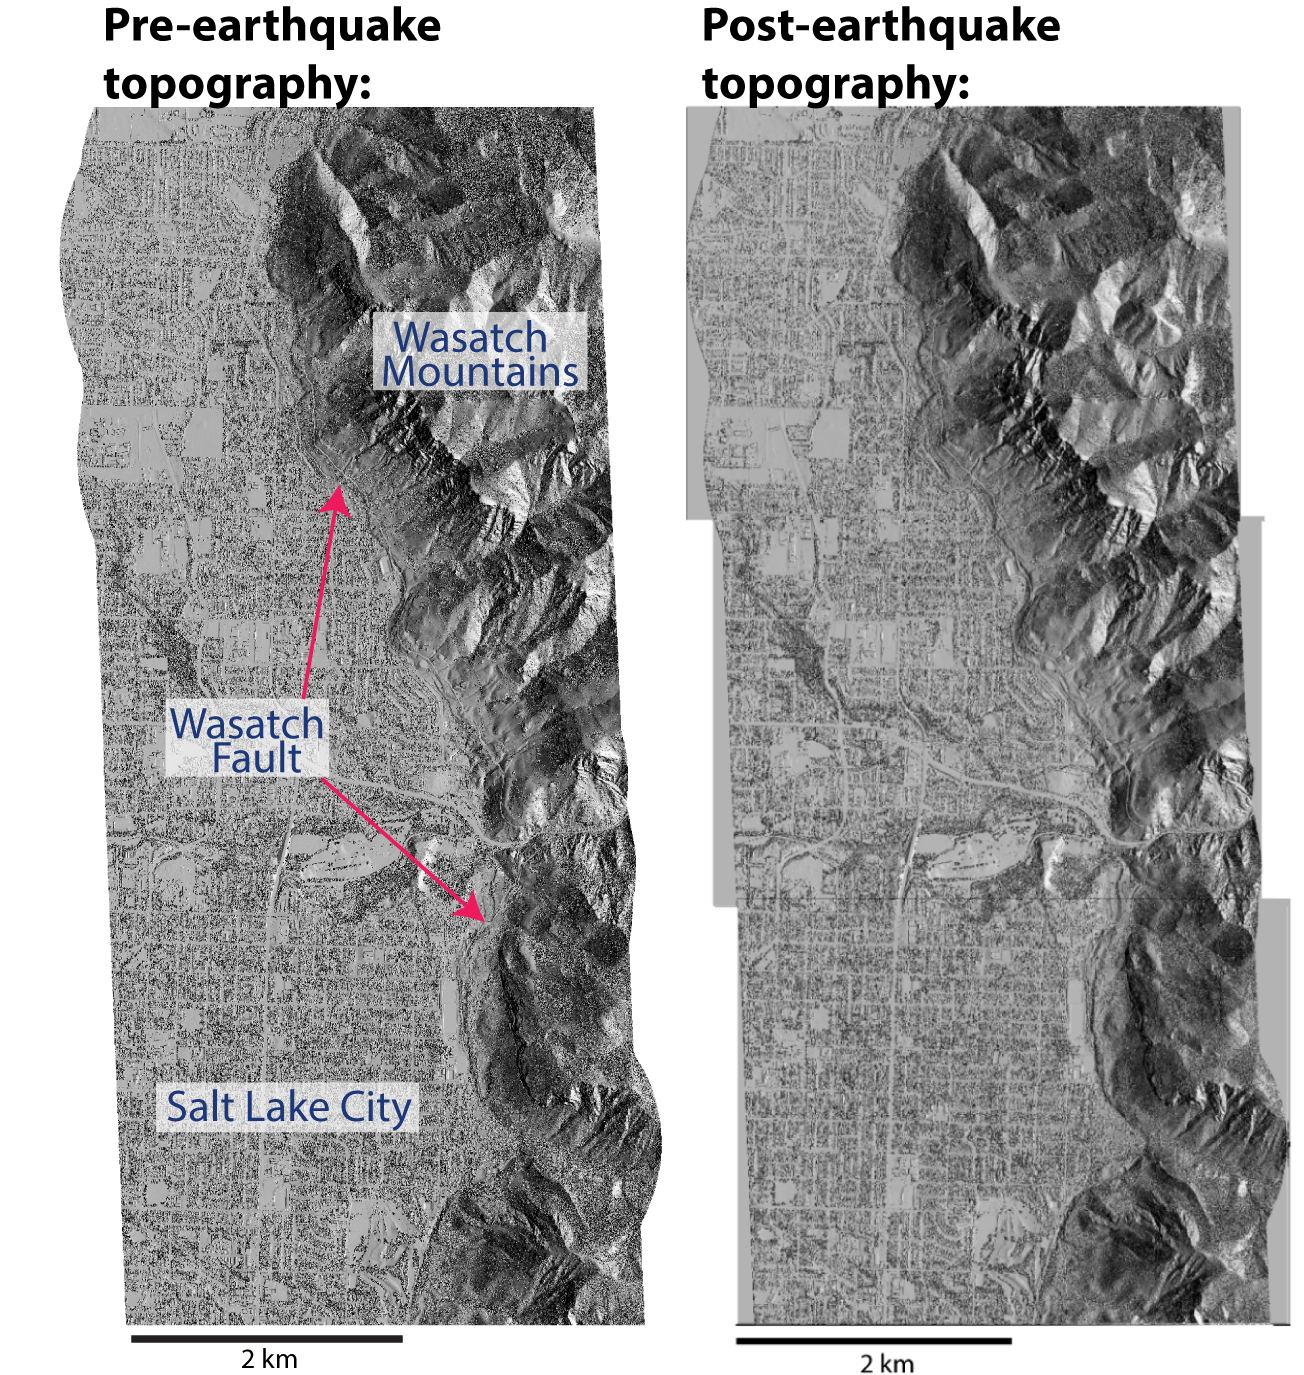 Students learn how to calculate surface deformation from sub-meter scale topography from before and after a large earthquake.